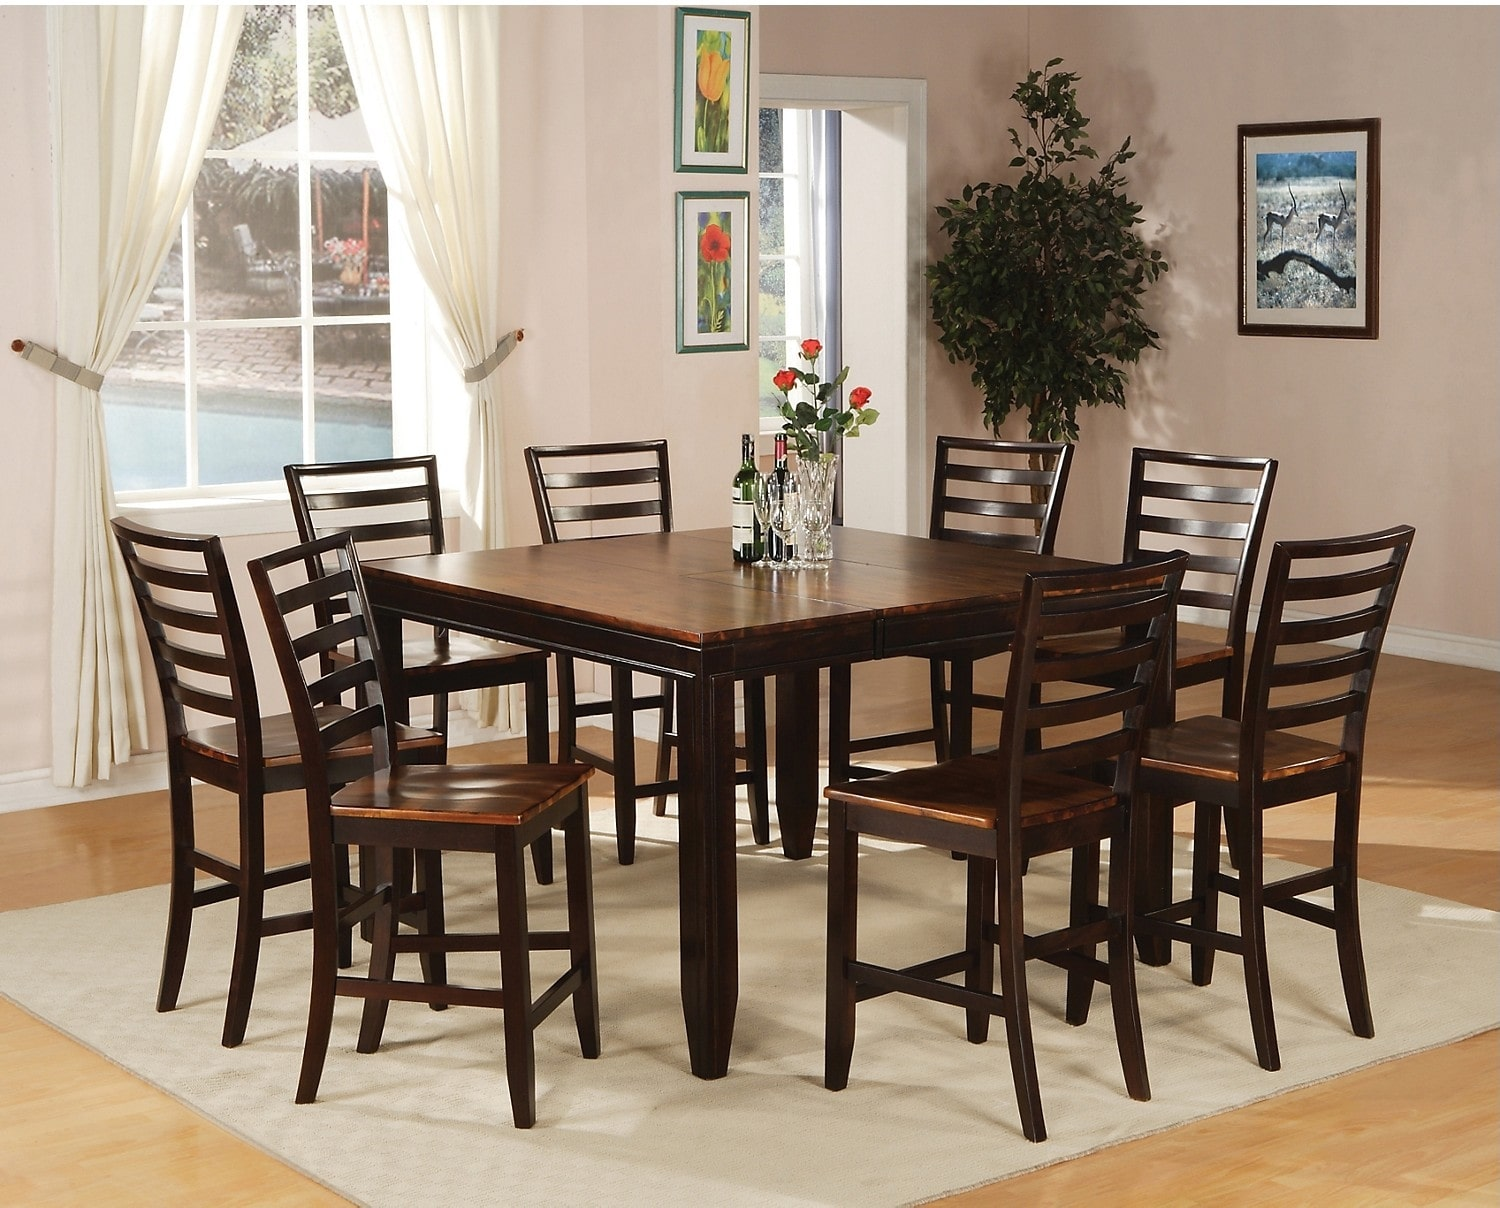 Dining Room Furniture - Zara 9-Piece Counter-Height Dining Package